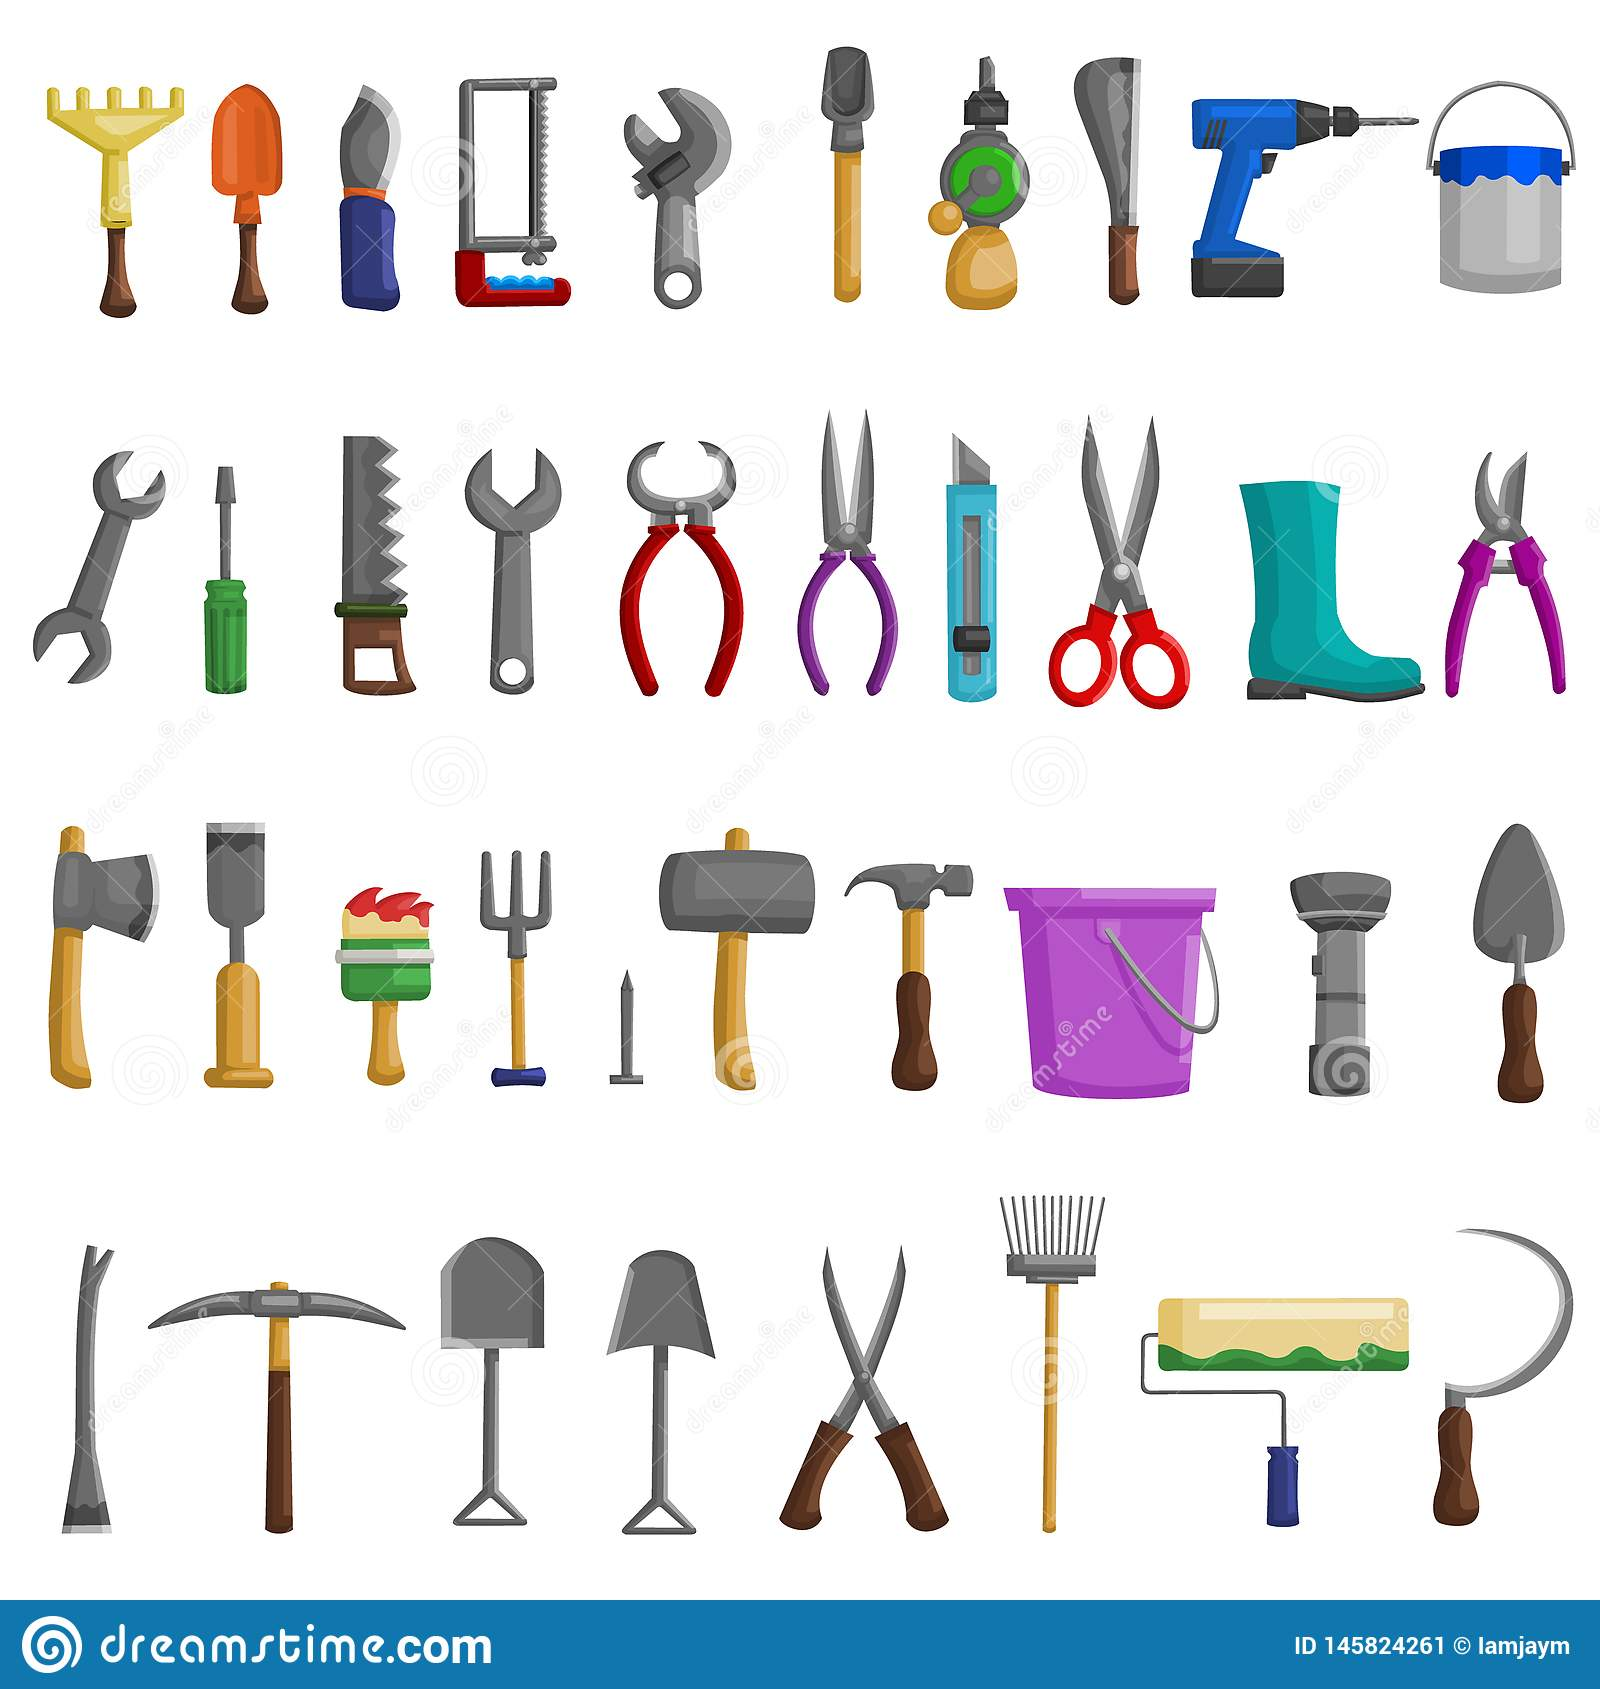 Stock vector illustration set isolated icons building tools repair, construction buildings, drill, hammer, screwdriver, saw, file,